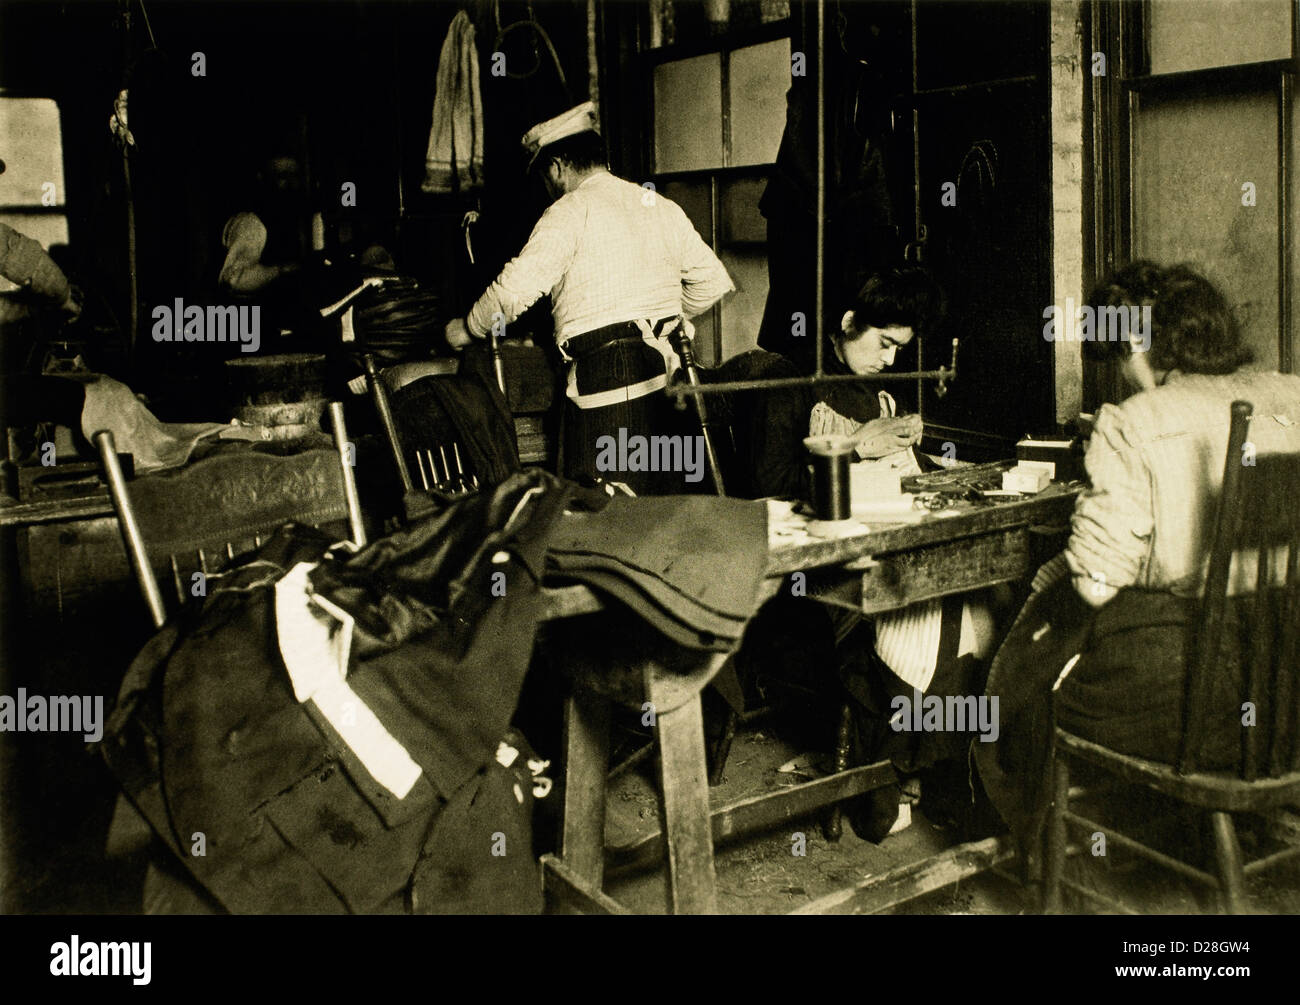 Workers in Clothing Sweatshop in Tenement Building, 30 Suffolk Street, New York City, USA, 1908 - Stock Image